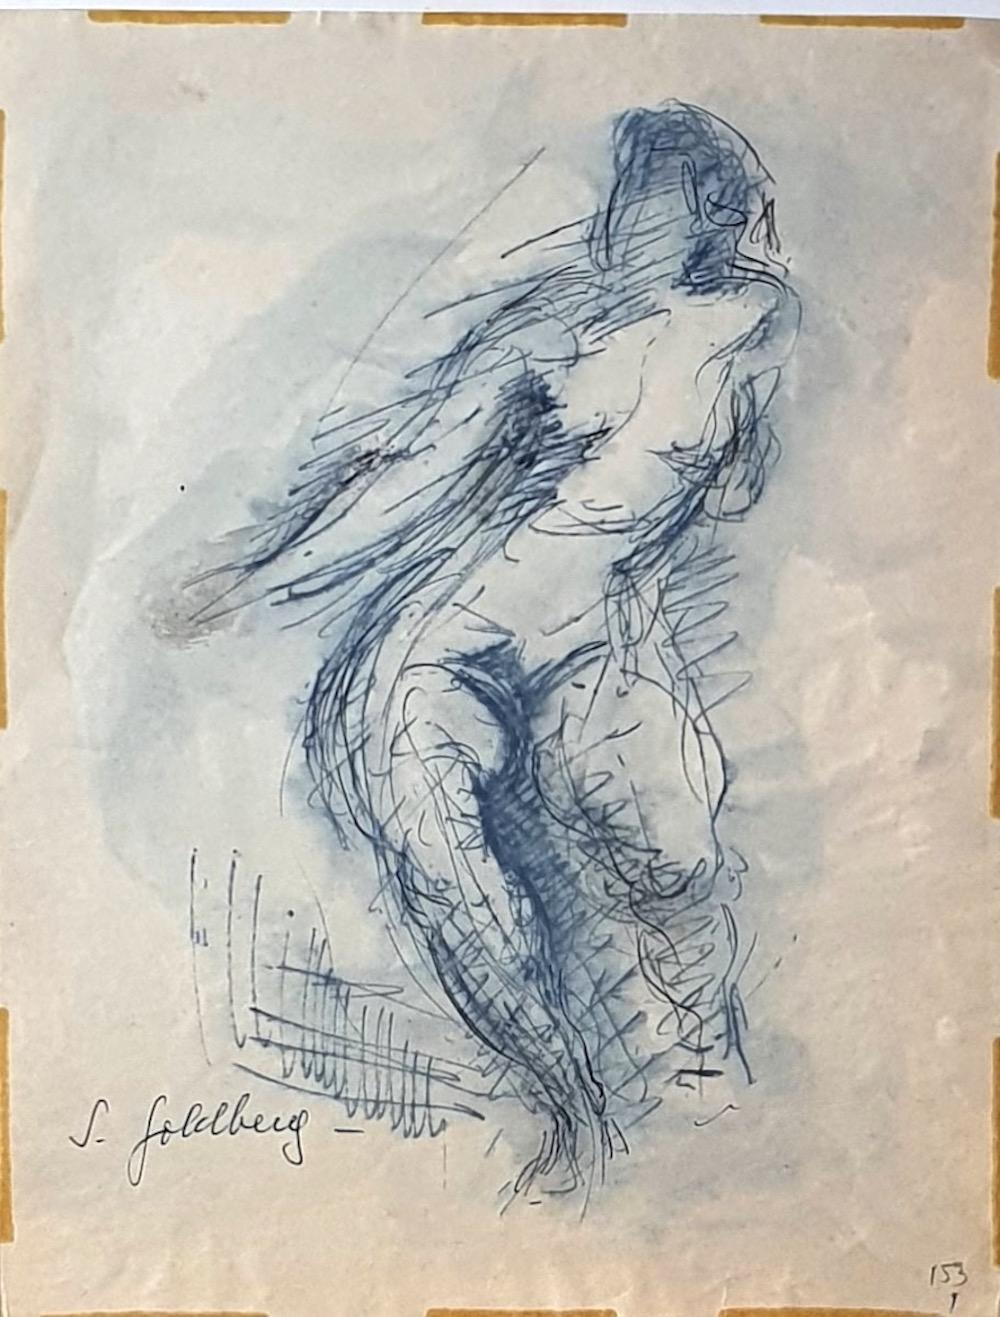 Nude - Original Pen Drawing and Watercolor by S. Goldberg - Mid 20th Century